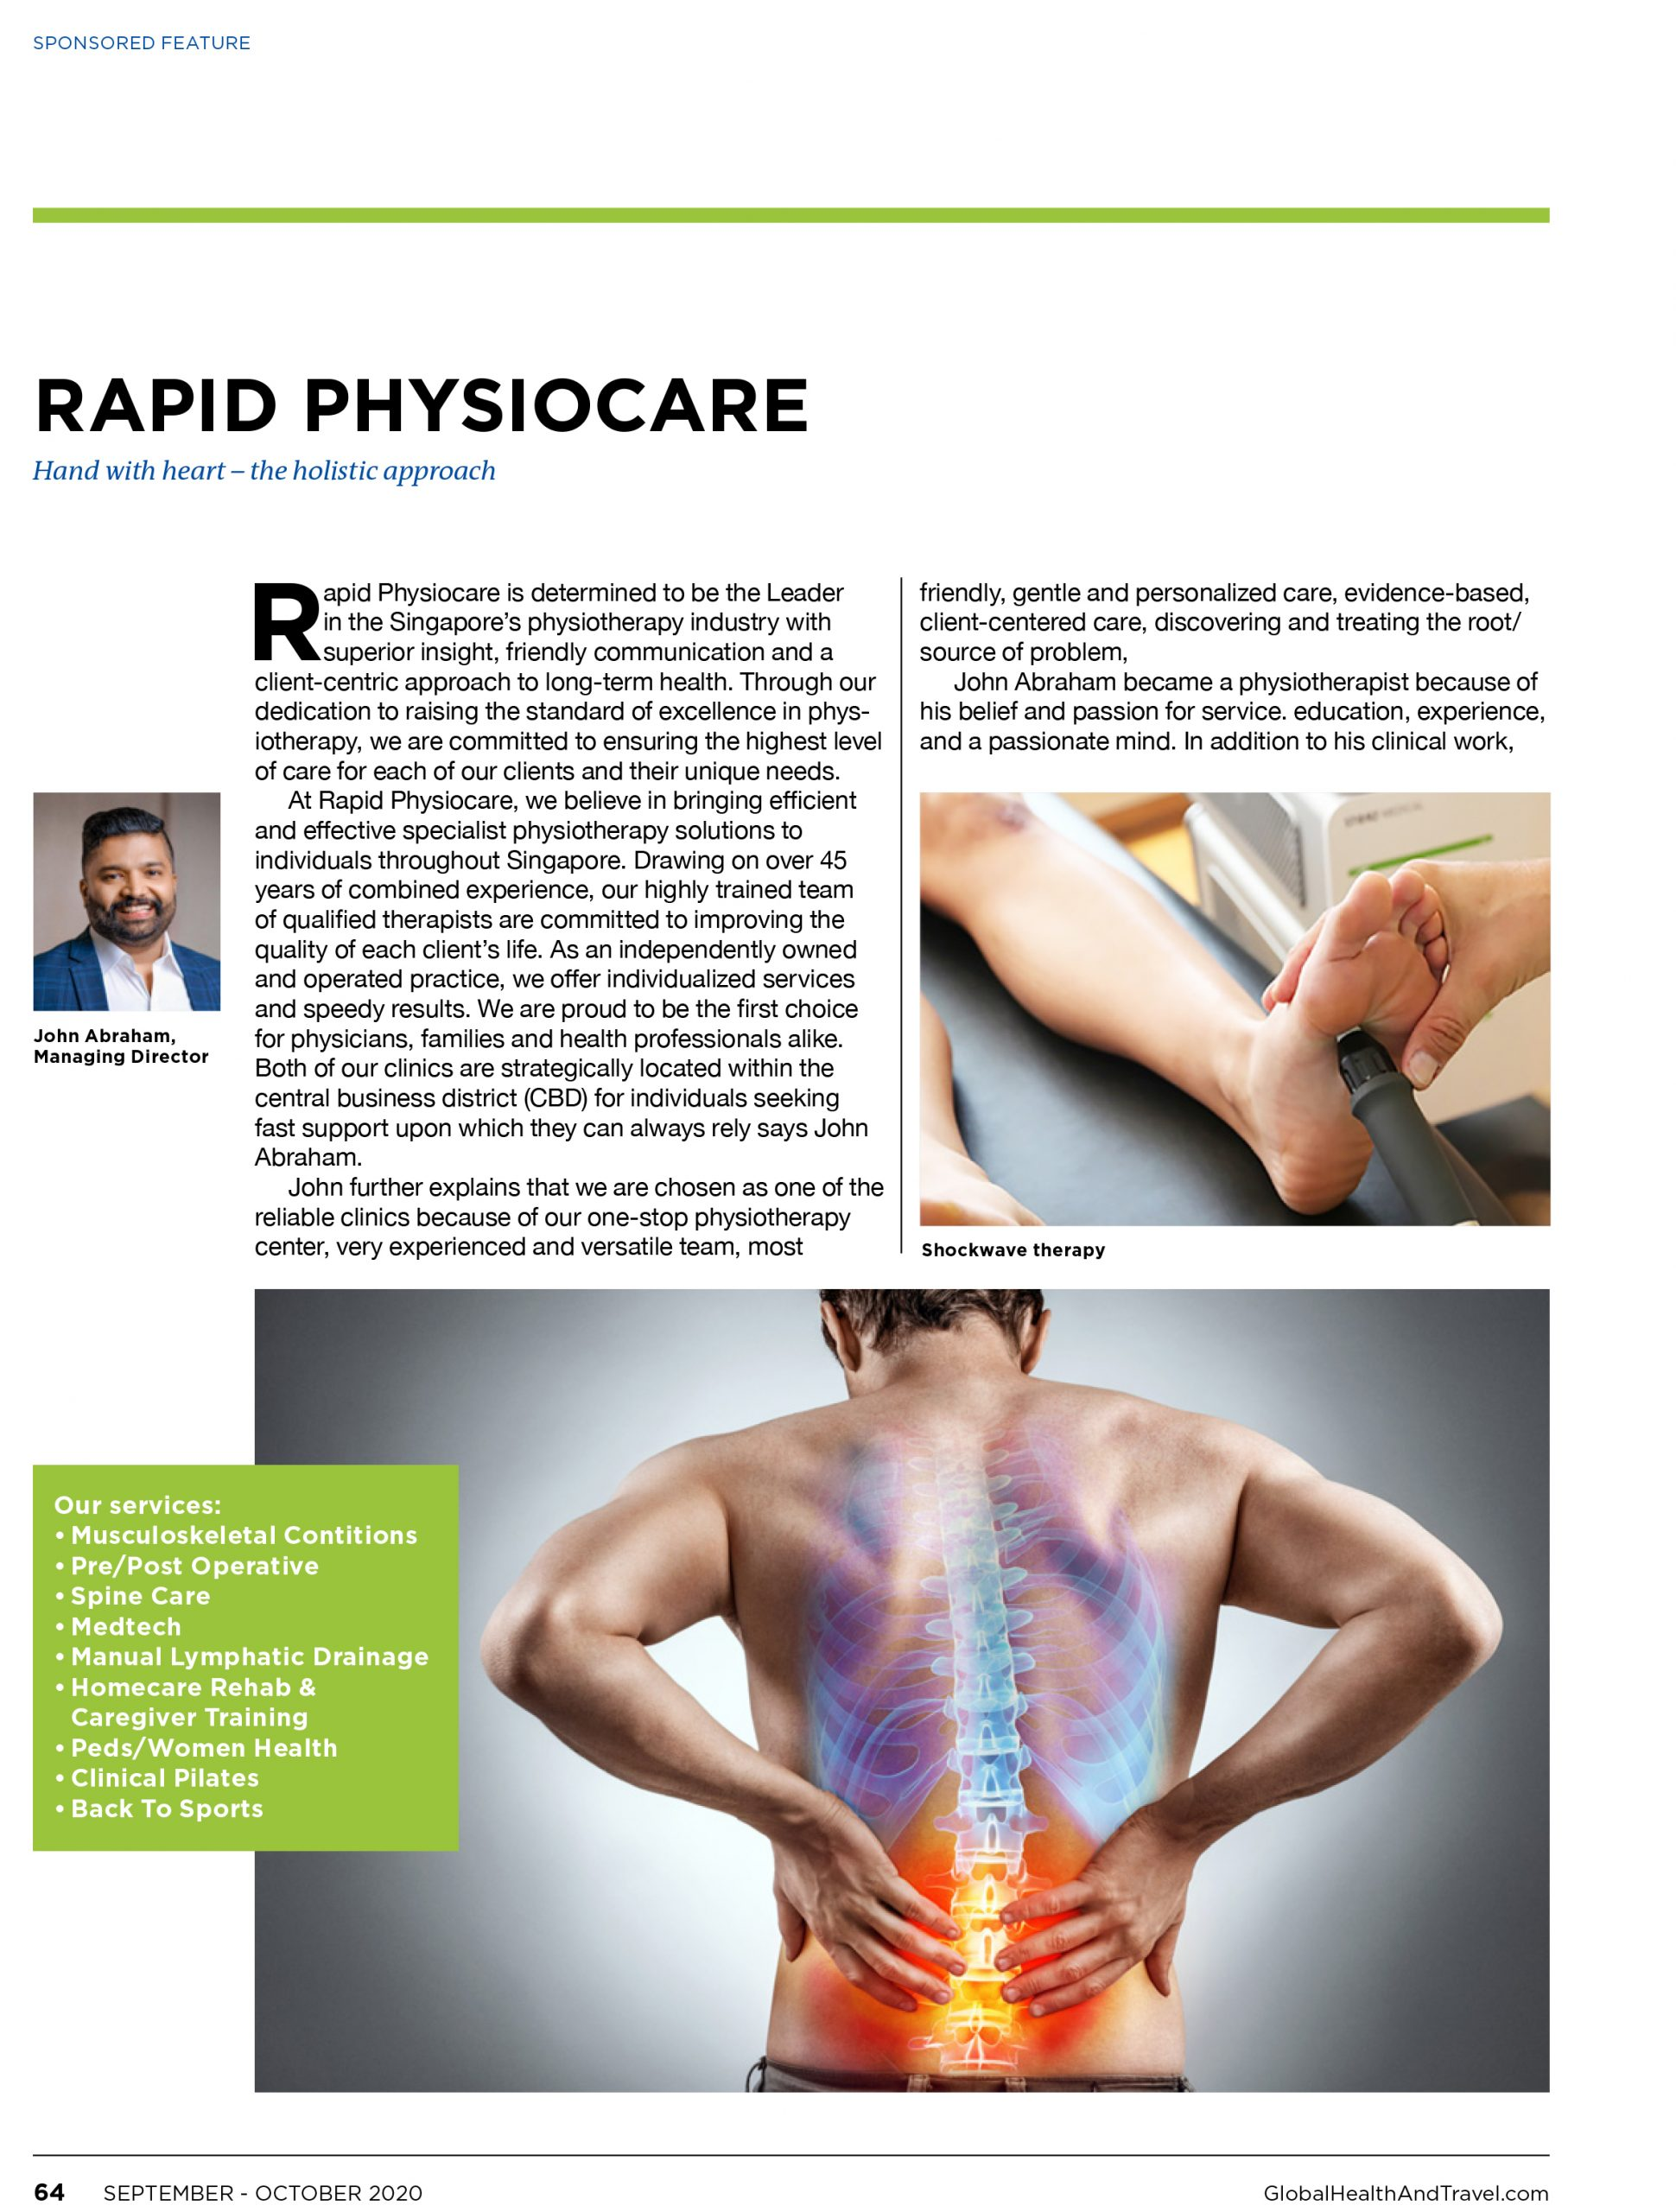 Rapid Physiocare Singapore